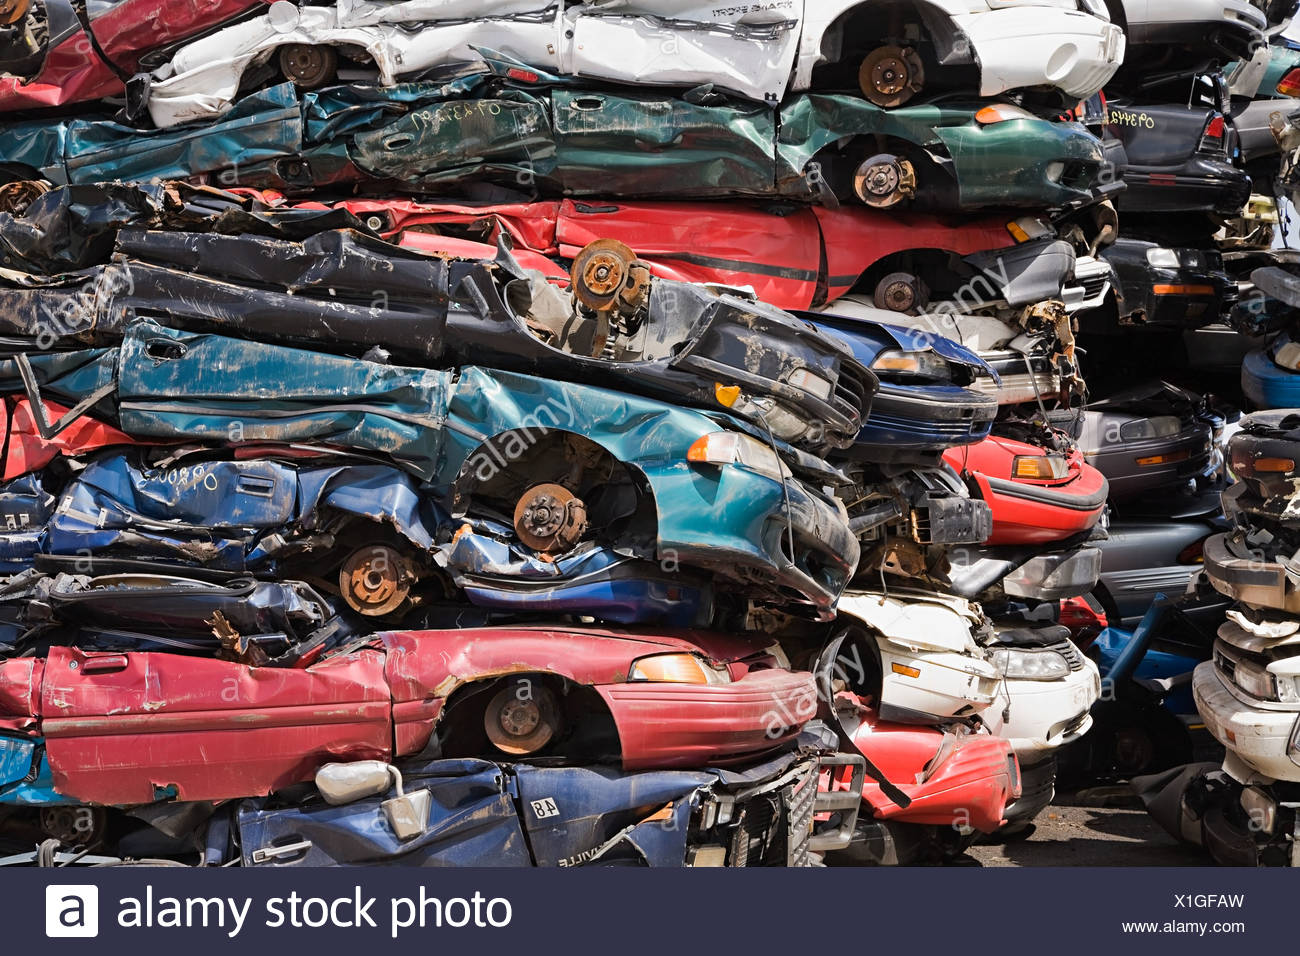 Stacks of crushed cars - Stock Image